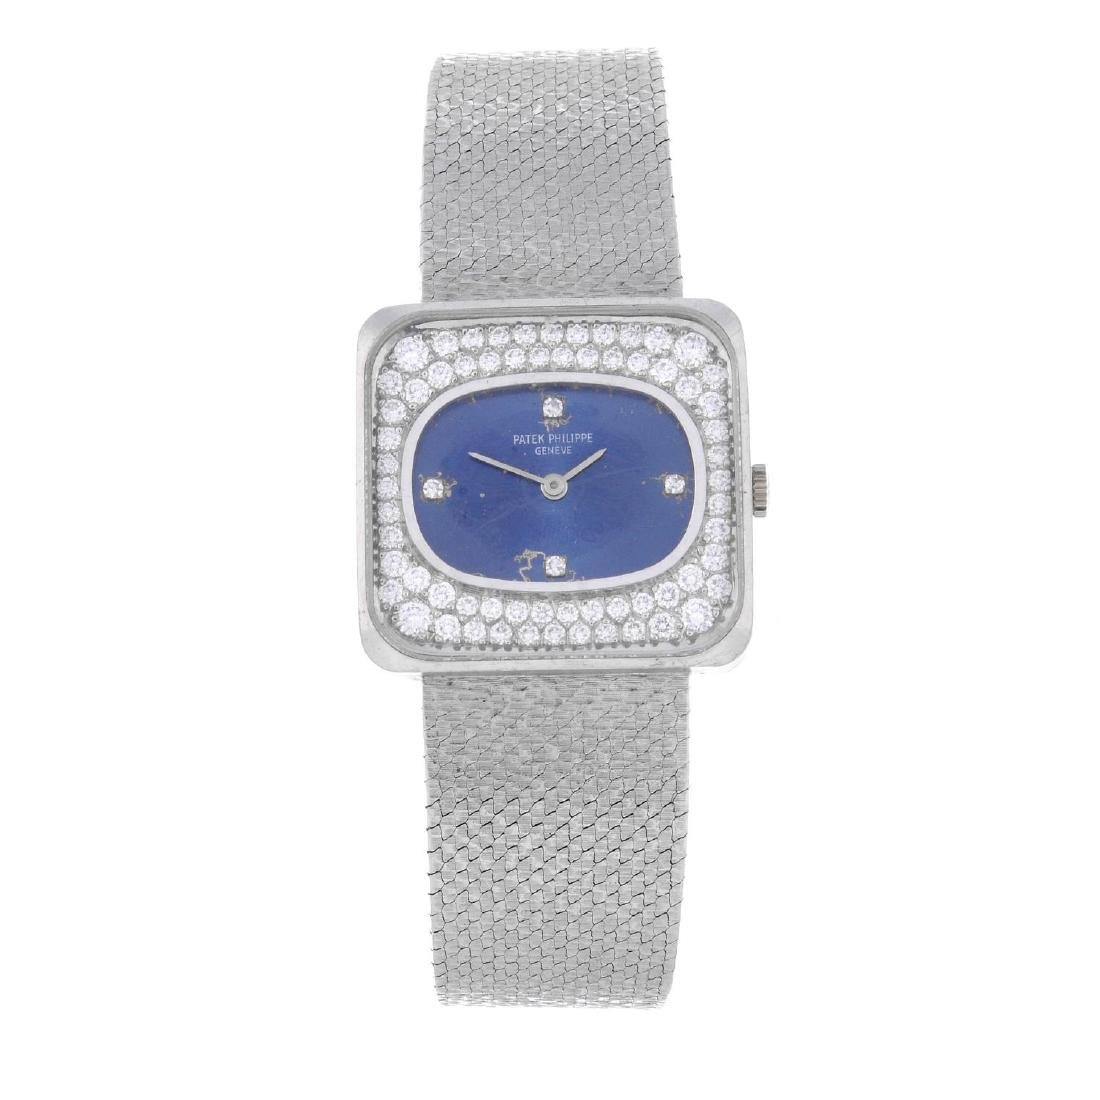 PATEK PHILIPPE - a lady's bracelet watch. White metal